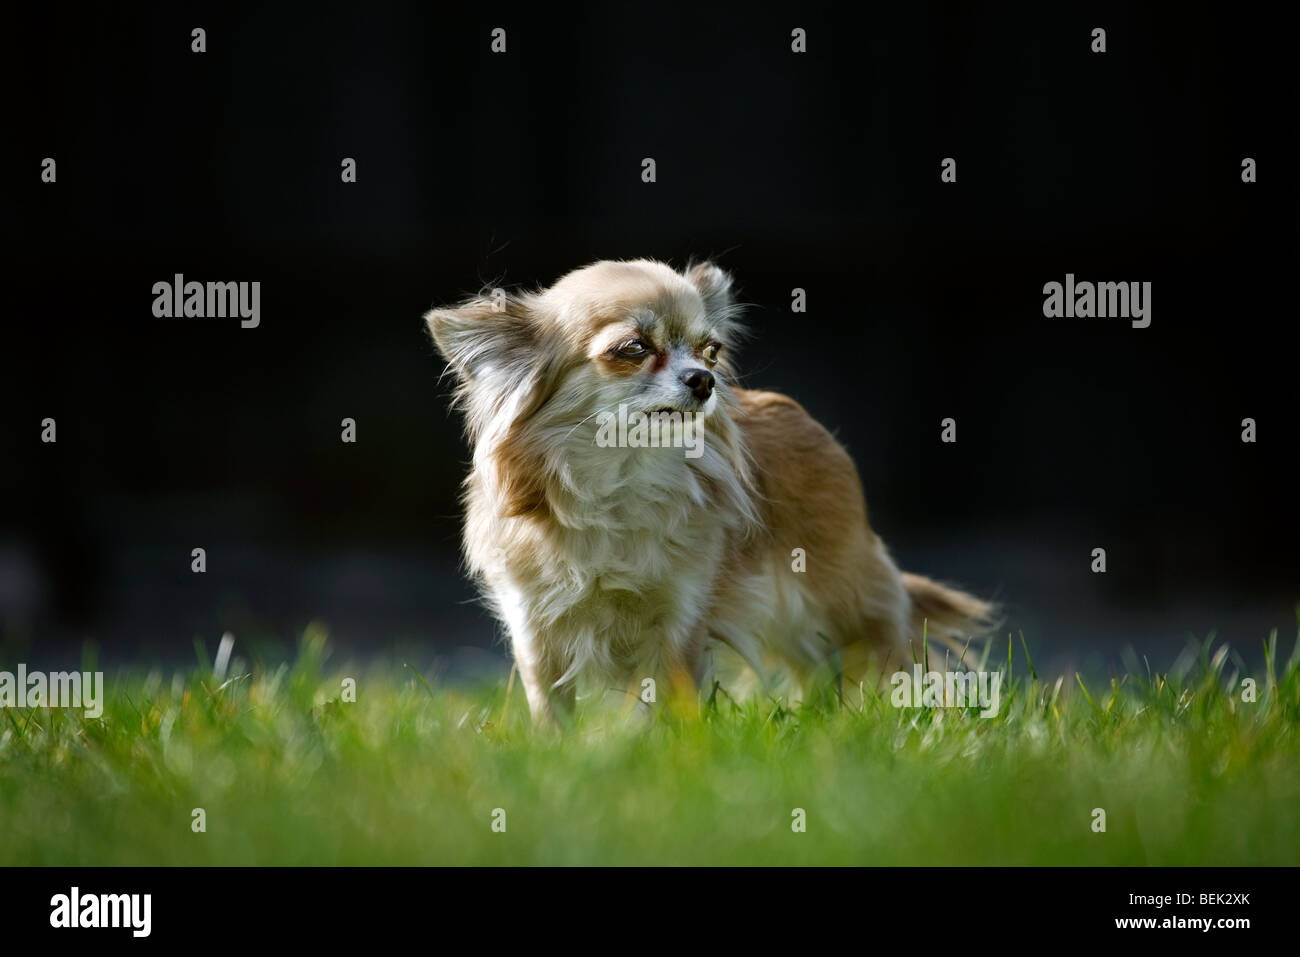 Chihuahua dog on lawn in garden - Stock Image